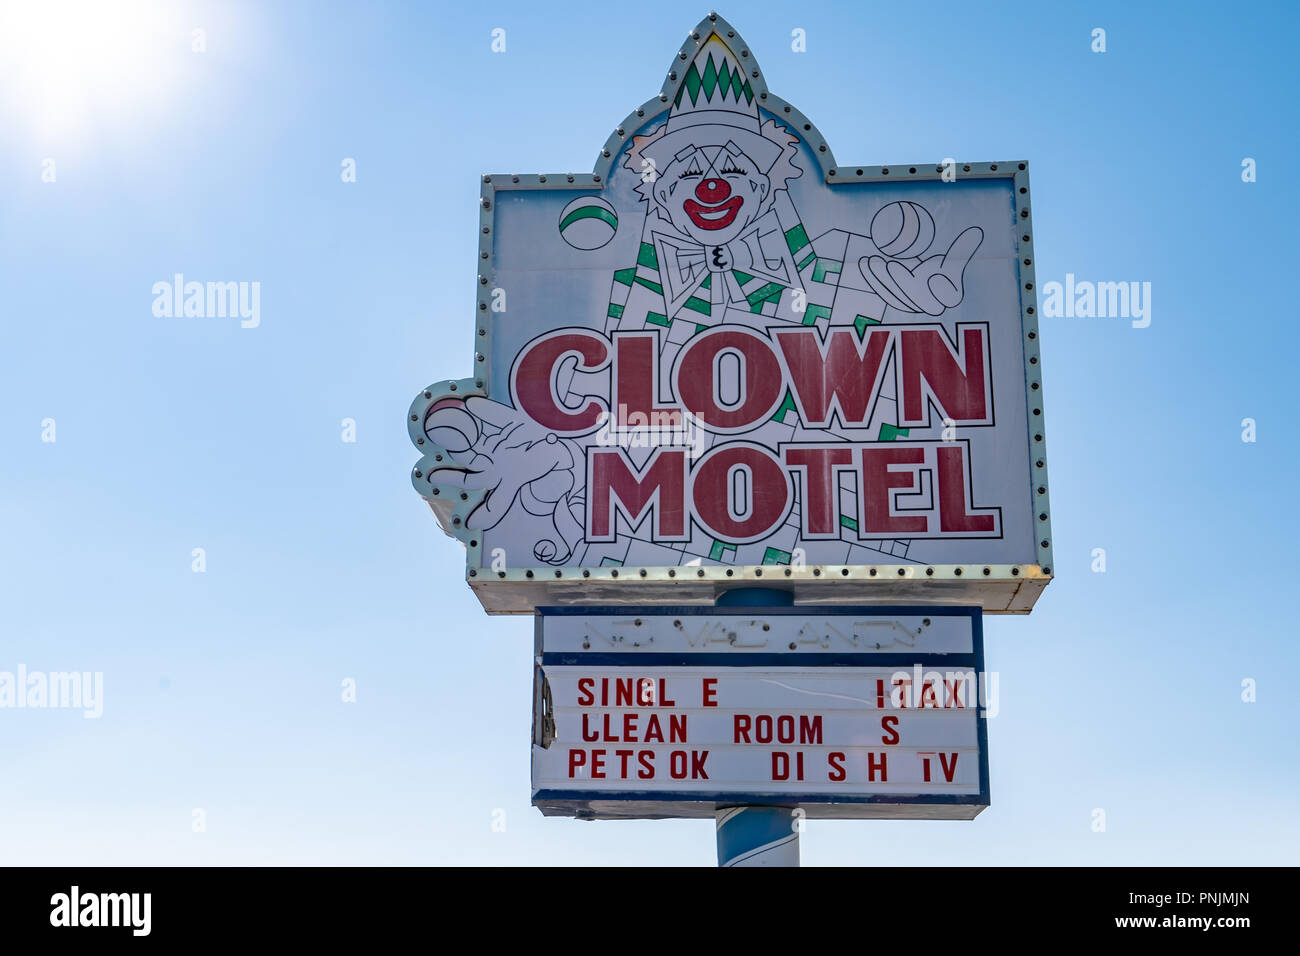 Clown Motel sign in Tonopah Nevada, is a kitschy roadside attraction - Stock Image